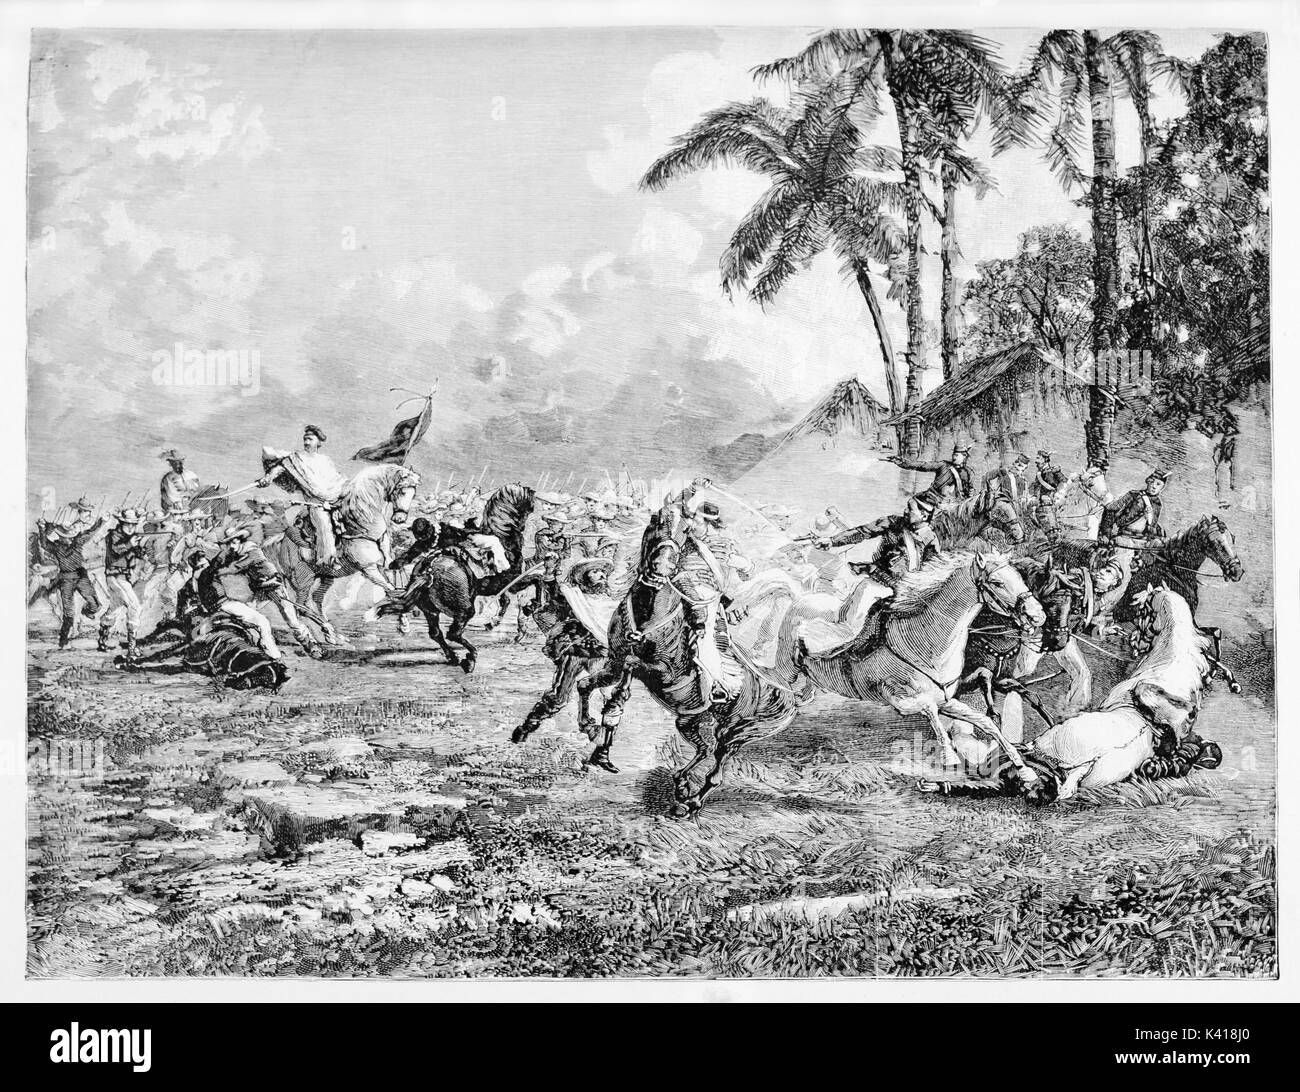 Old illustration of san antonio battle during uruguayan civil war old illustration of san antonio battle during uruguayan civil war the best known south american action of garibaldi created by e matania published on altavistaventures Gallery